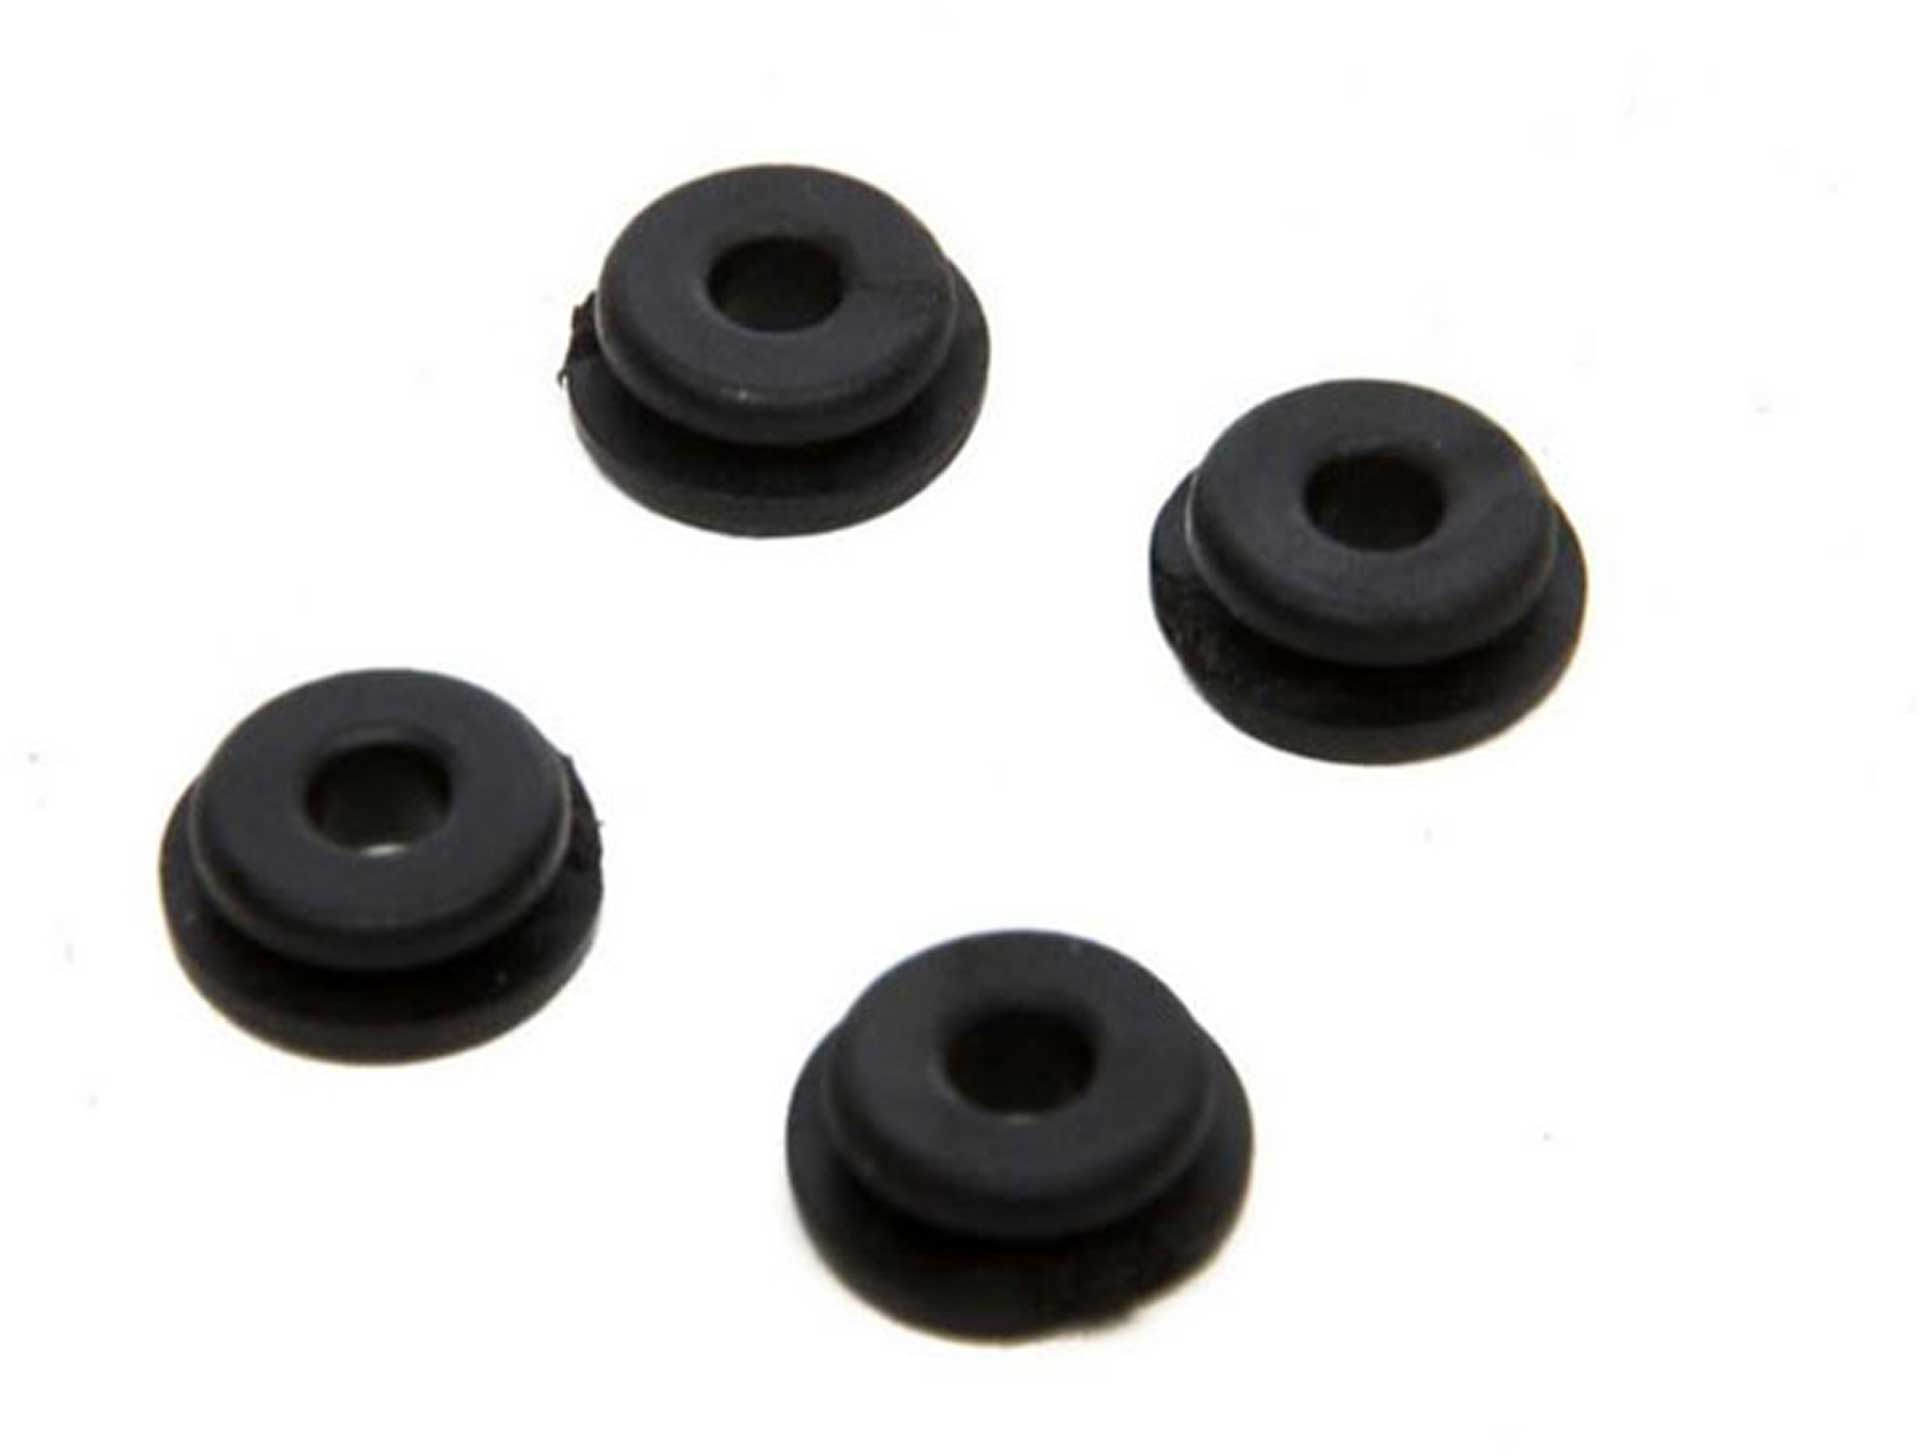 BLADE CANOPY GROMMETS FUSION 480